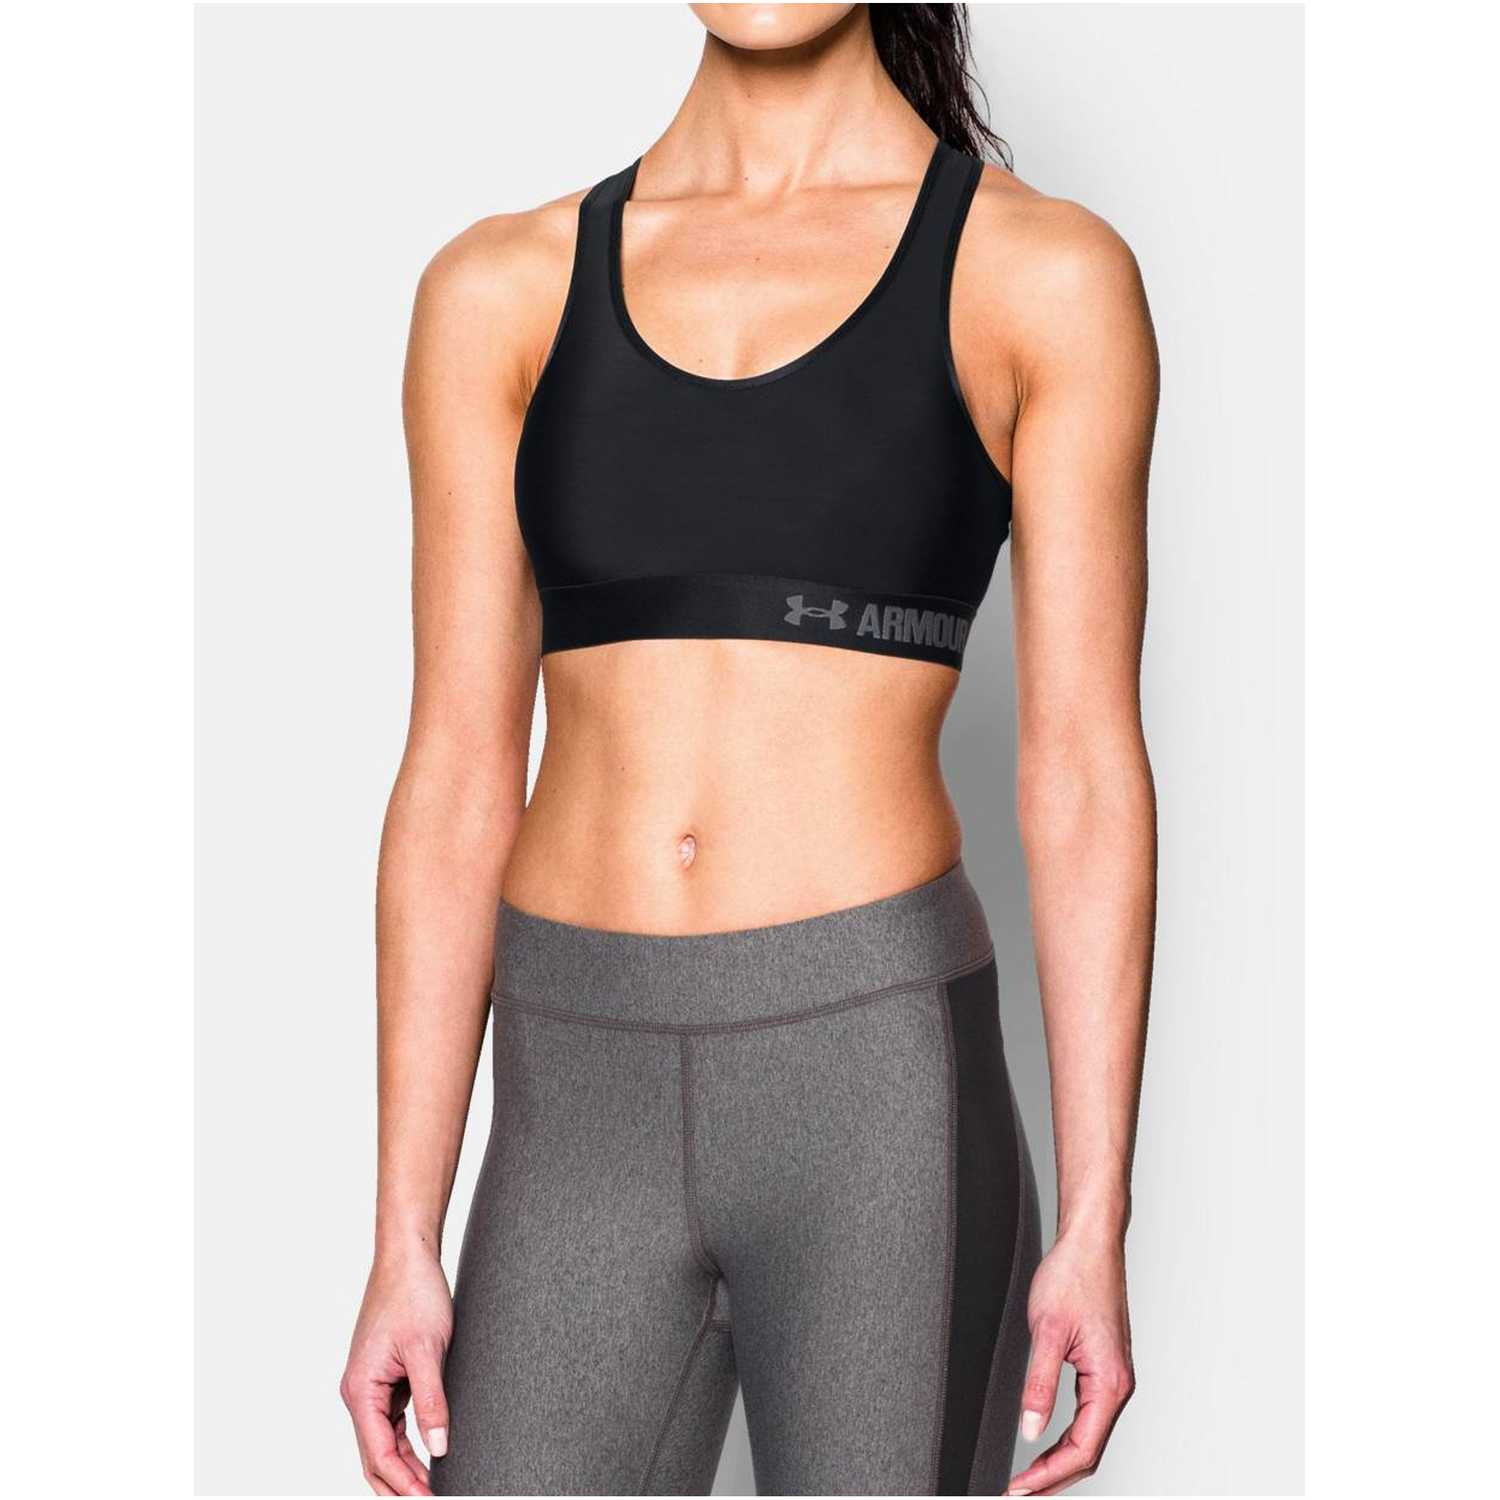 Top de Mujer Under Armour Negro armour mid bra